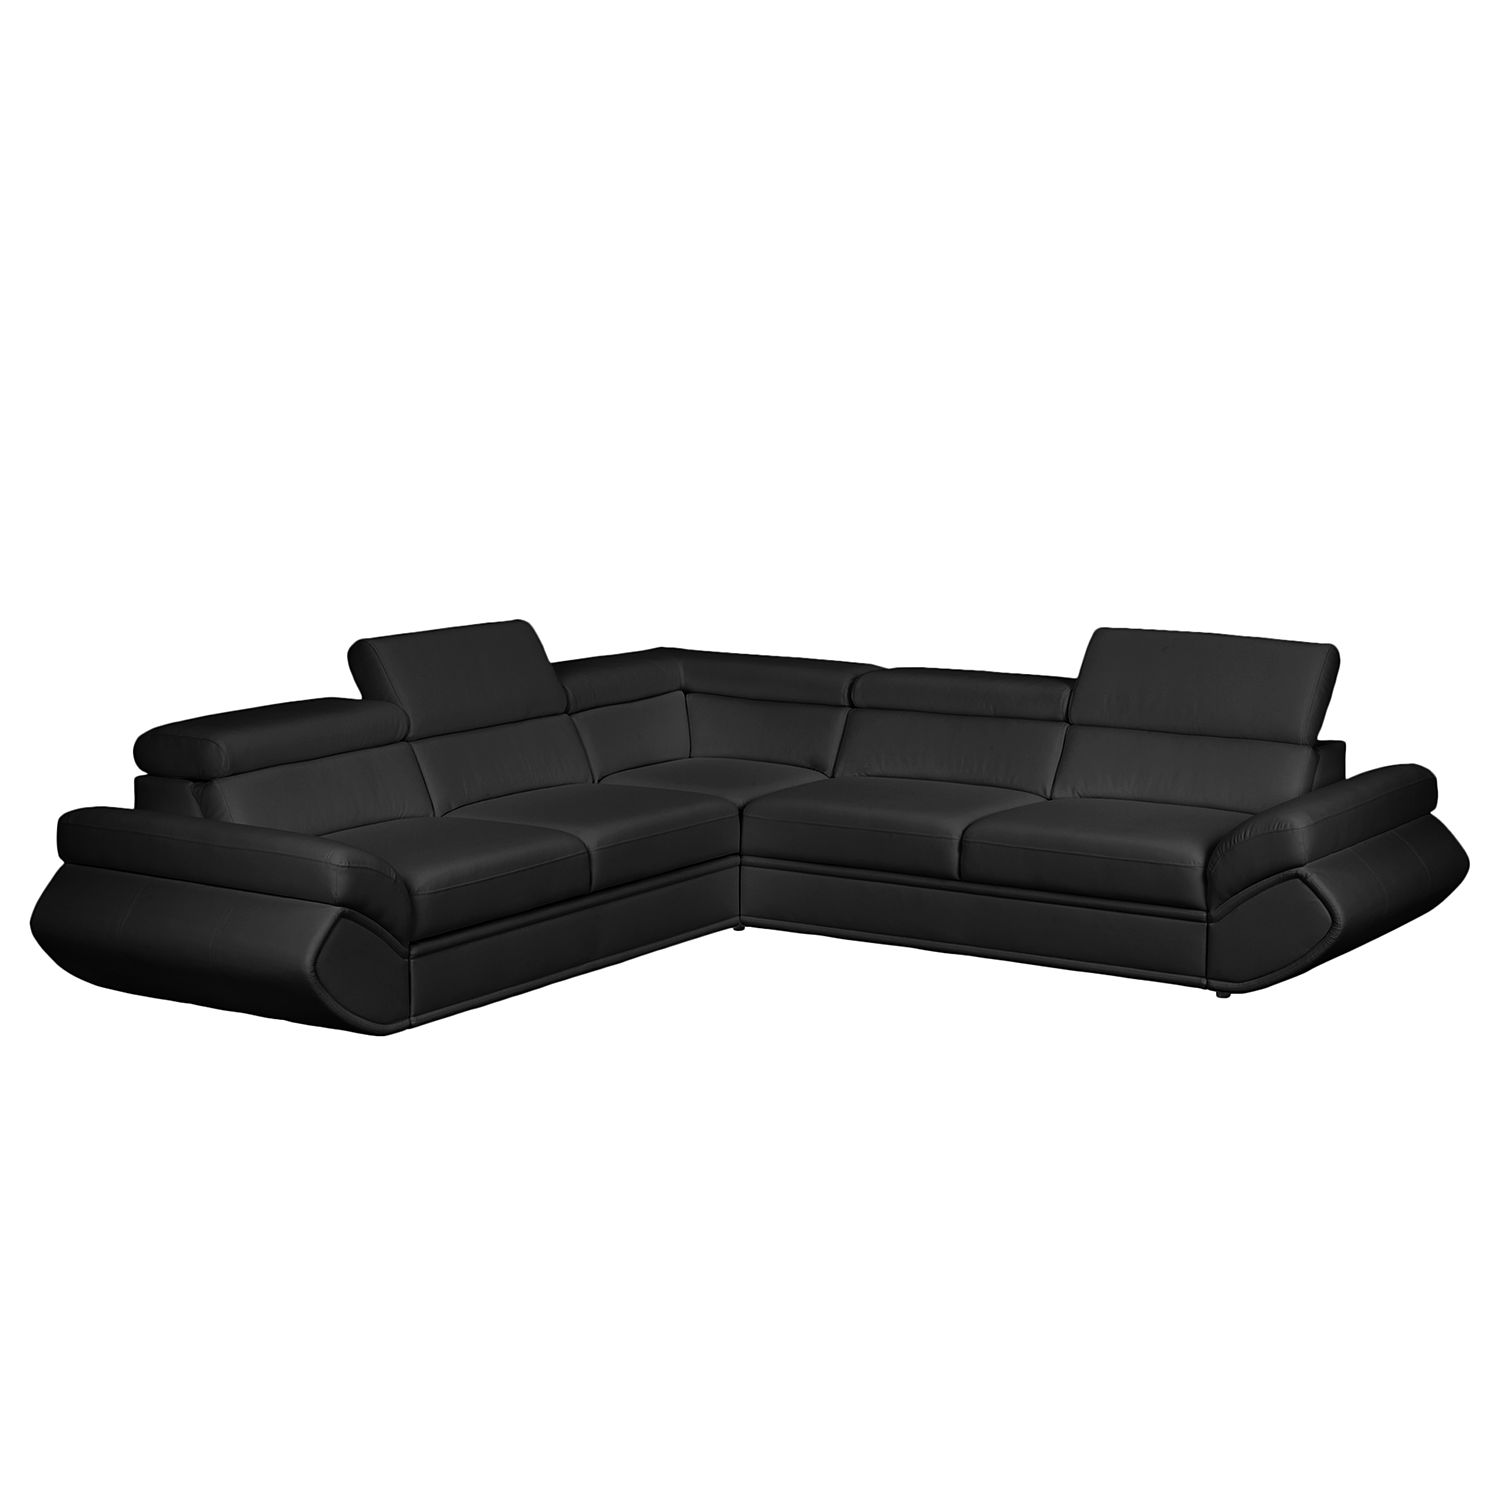 Ecksofa Black Rock I